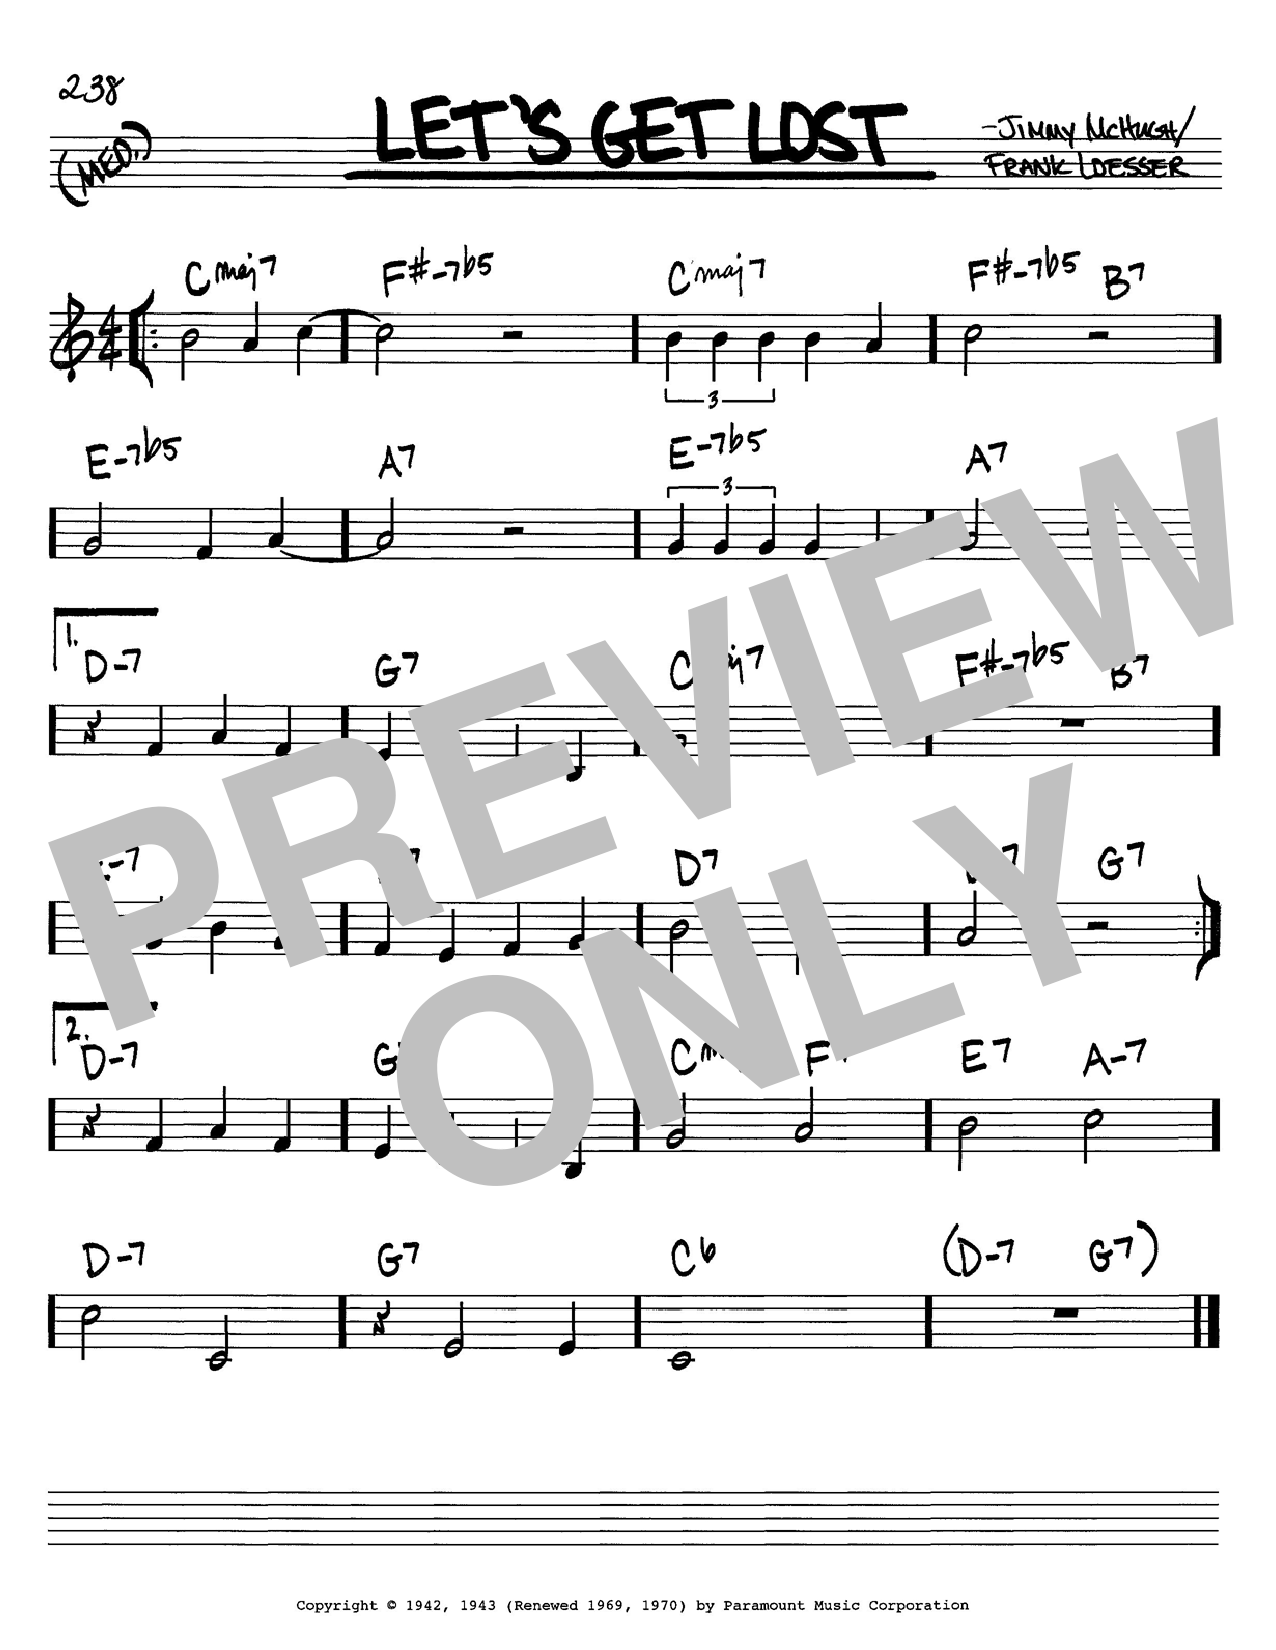 Frank Loesser Let's Get Lost sheet music notes and chords